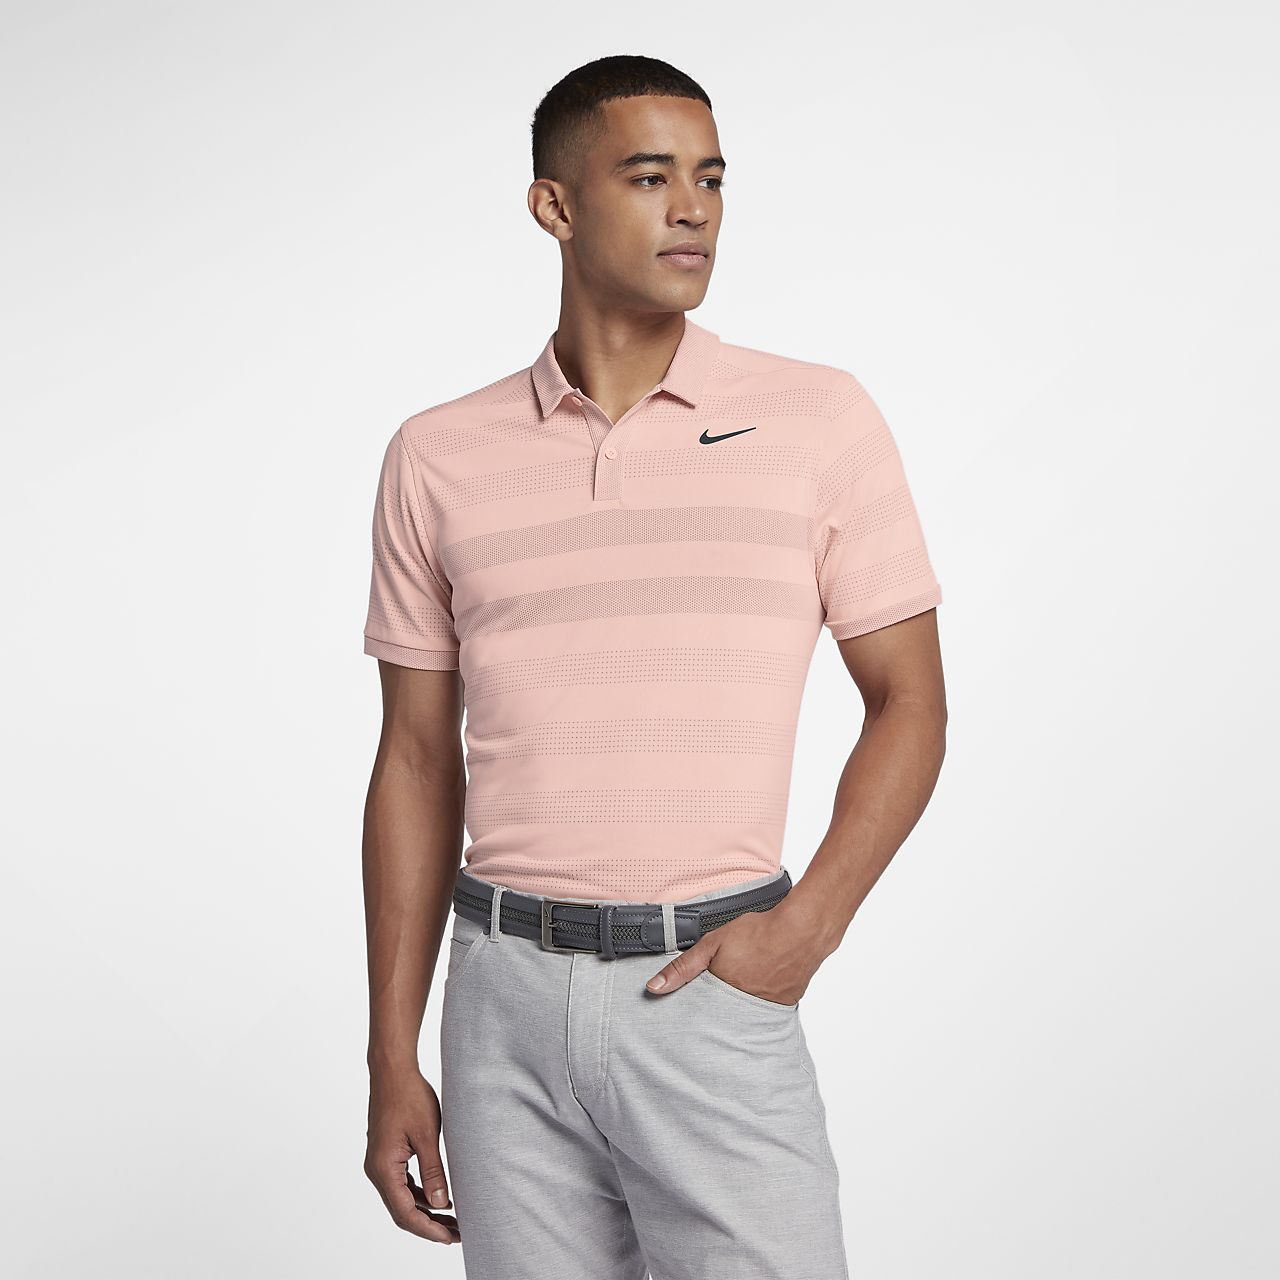 Nike Zonal Cooling Men's Striped Golf Polo